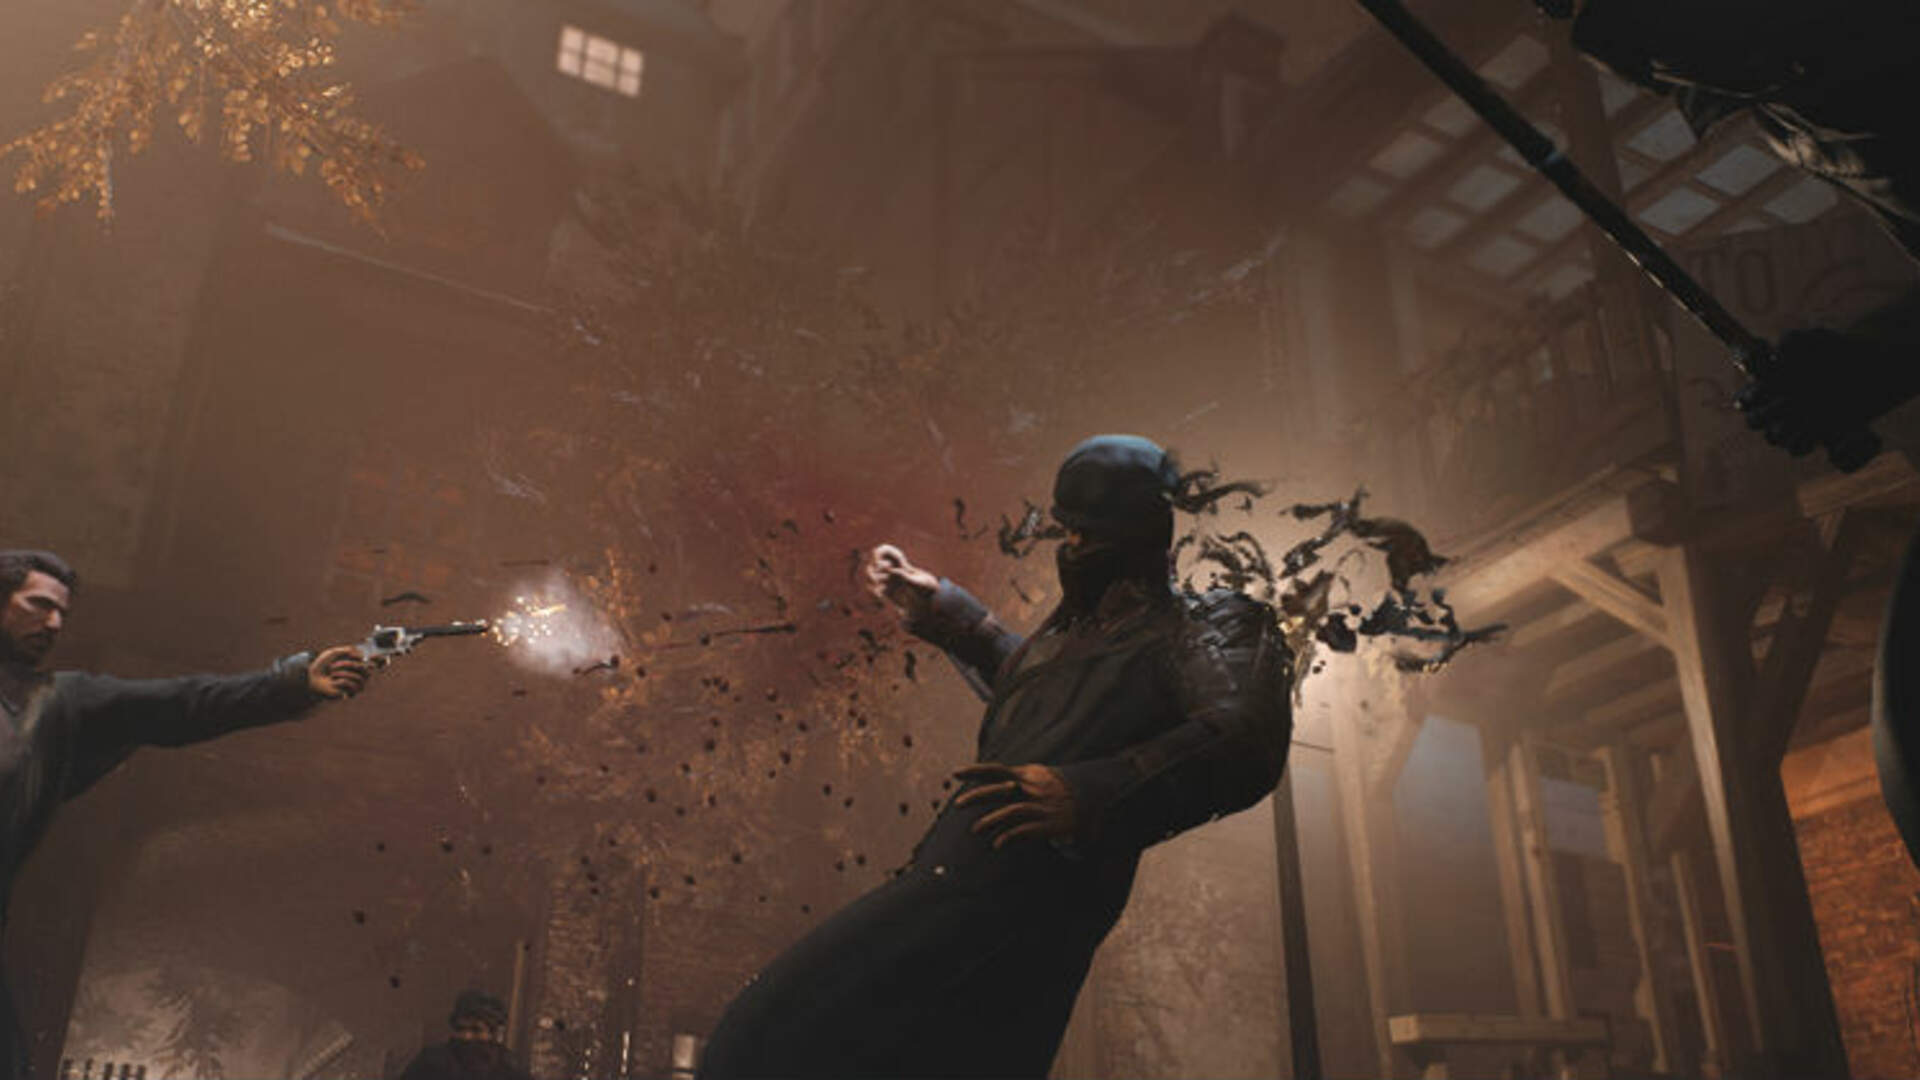 Life is Strange Developer's Next Game, Vampyr, is Coming Out in June